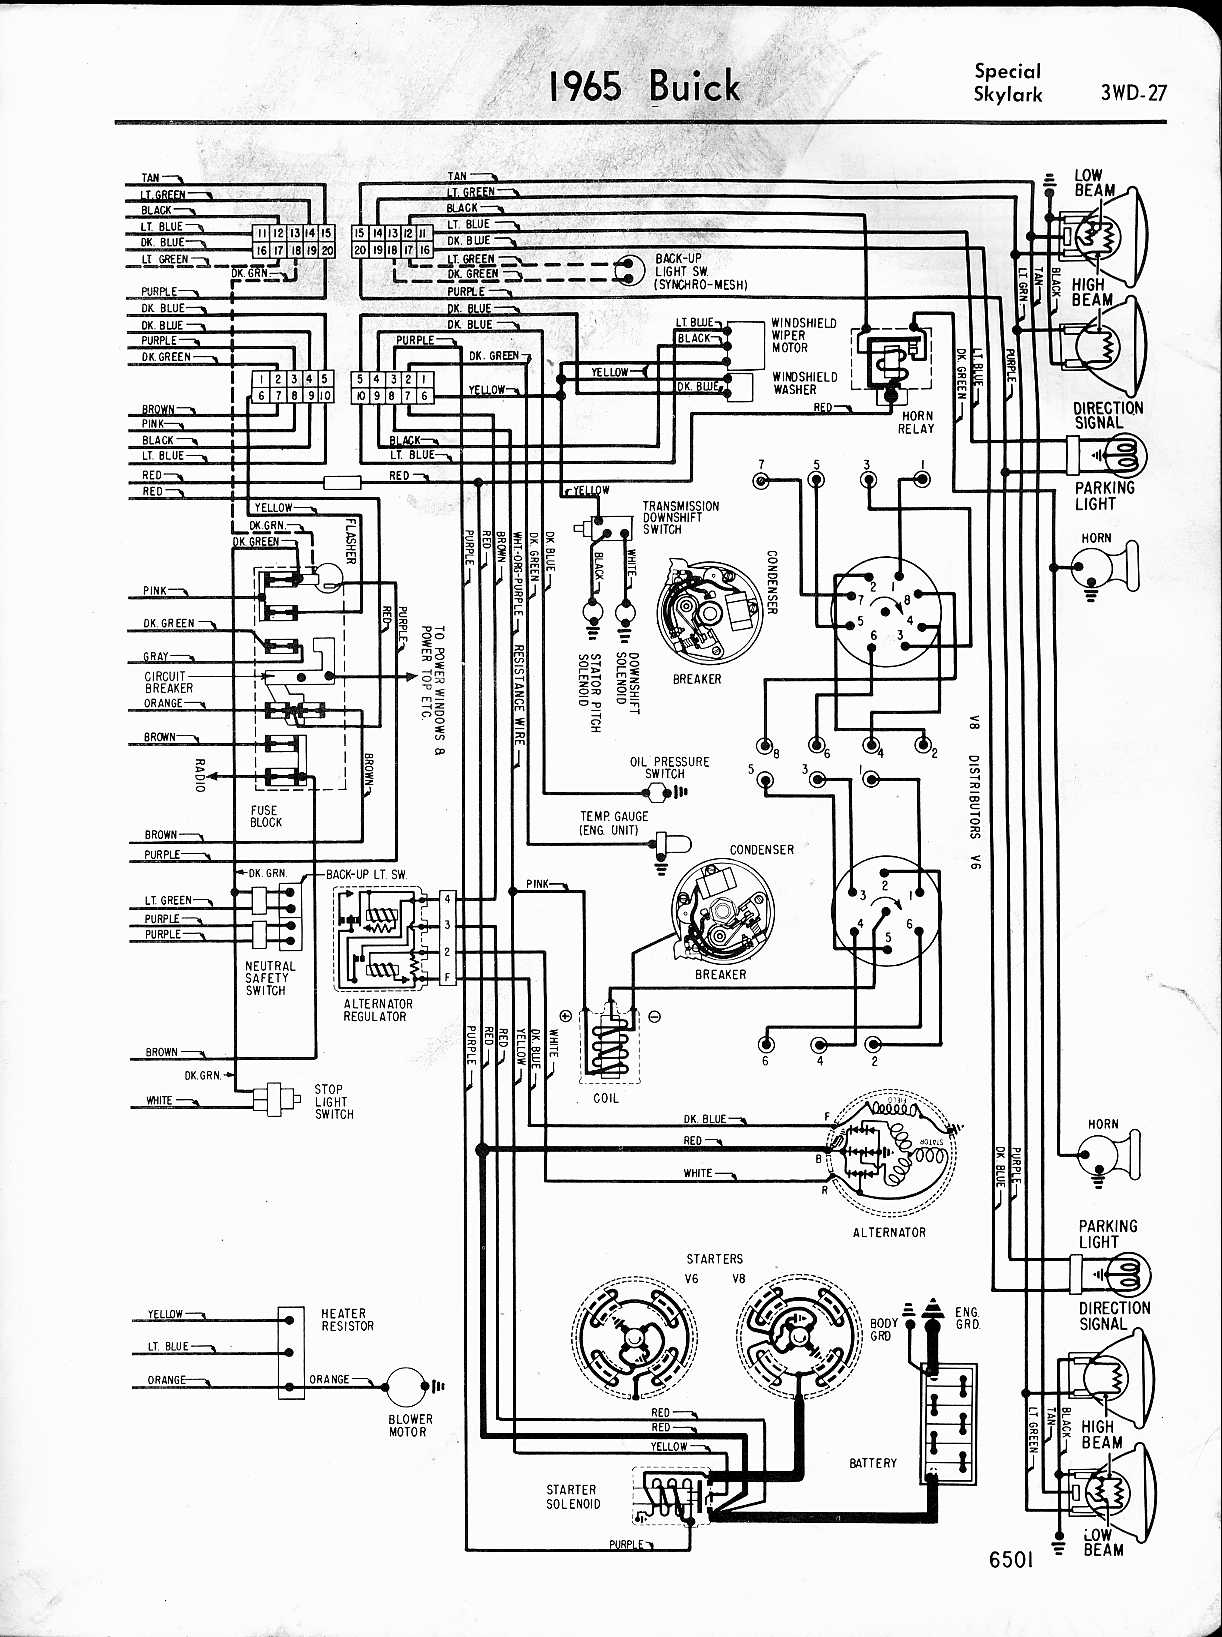 65 Ford Galaxie Wiring Diagram further Buickindex besides Fords convertible besides 1953 Ford F100 Steering Gear Box in addition Cadillac 1964 Windows Wiring Diagram. on 1964 ford thunderbird wiring diagram